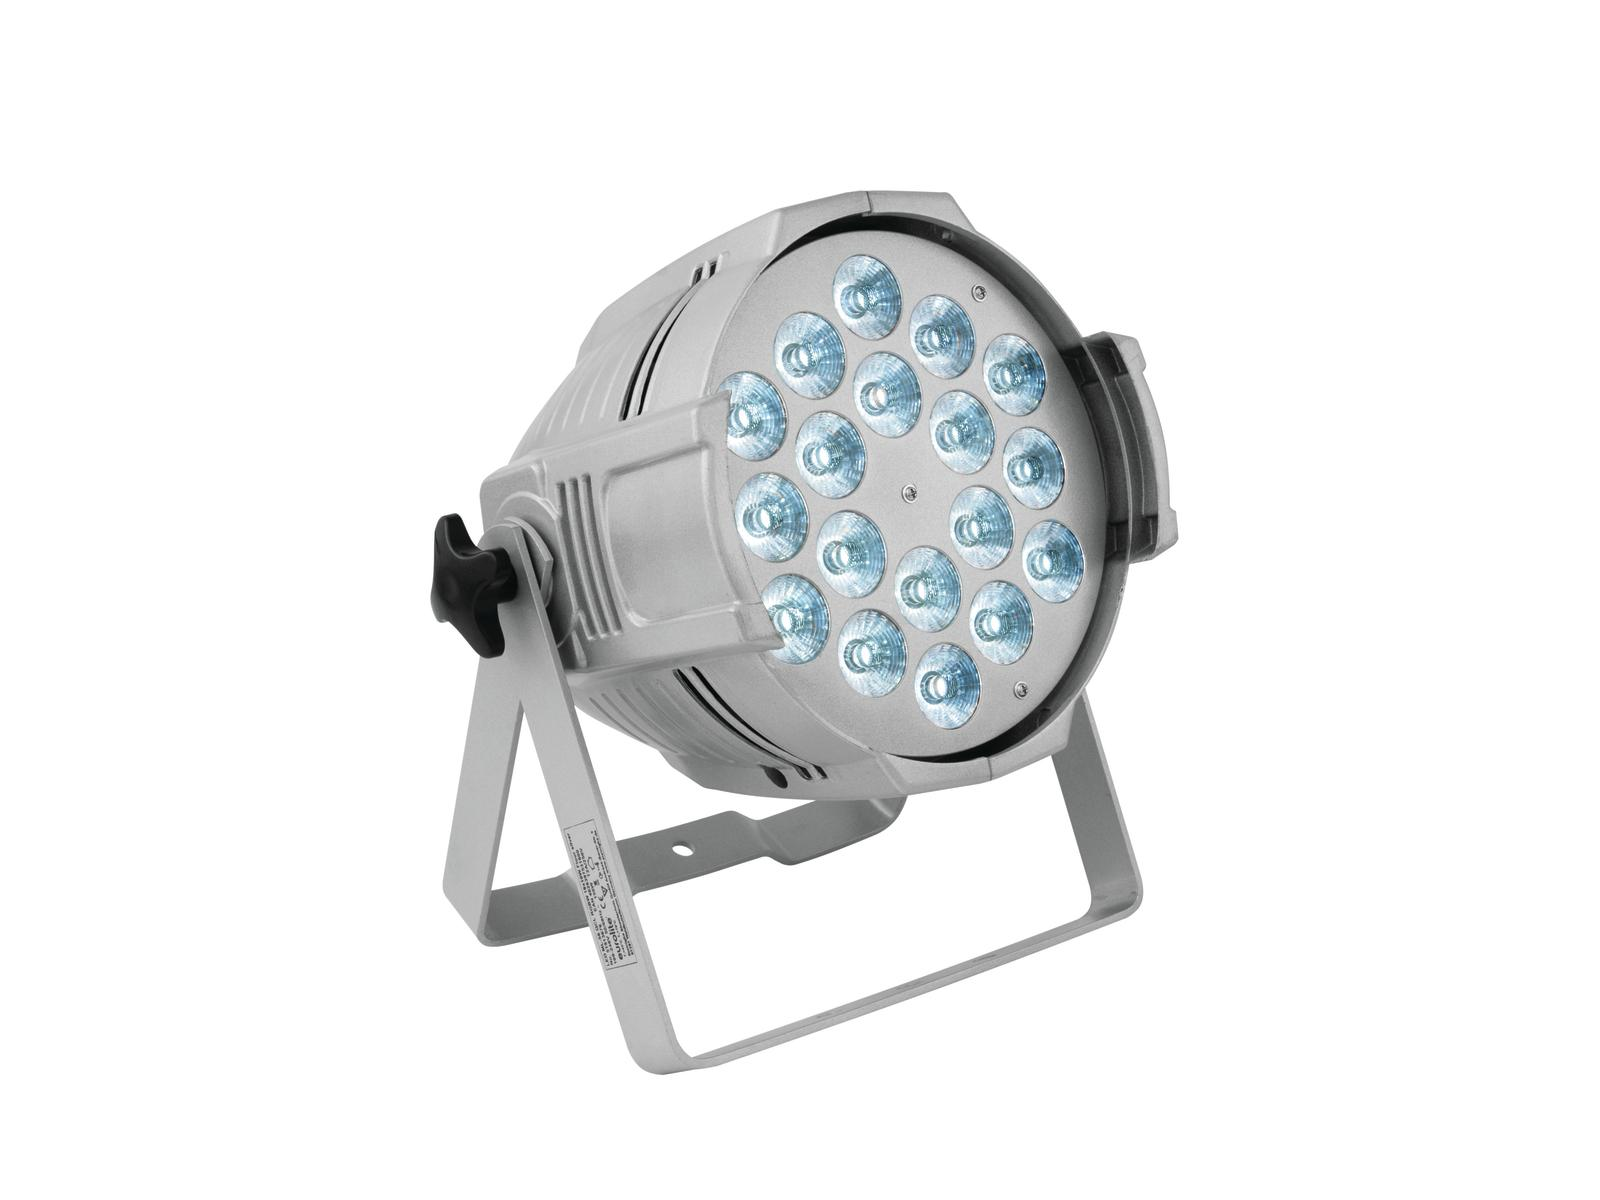 EUROLITE LED ML-56 QLC RGBW 18